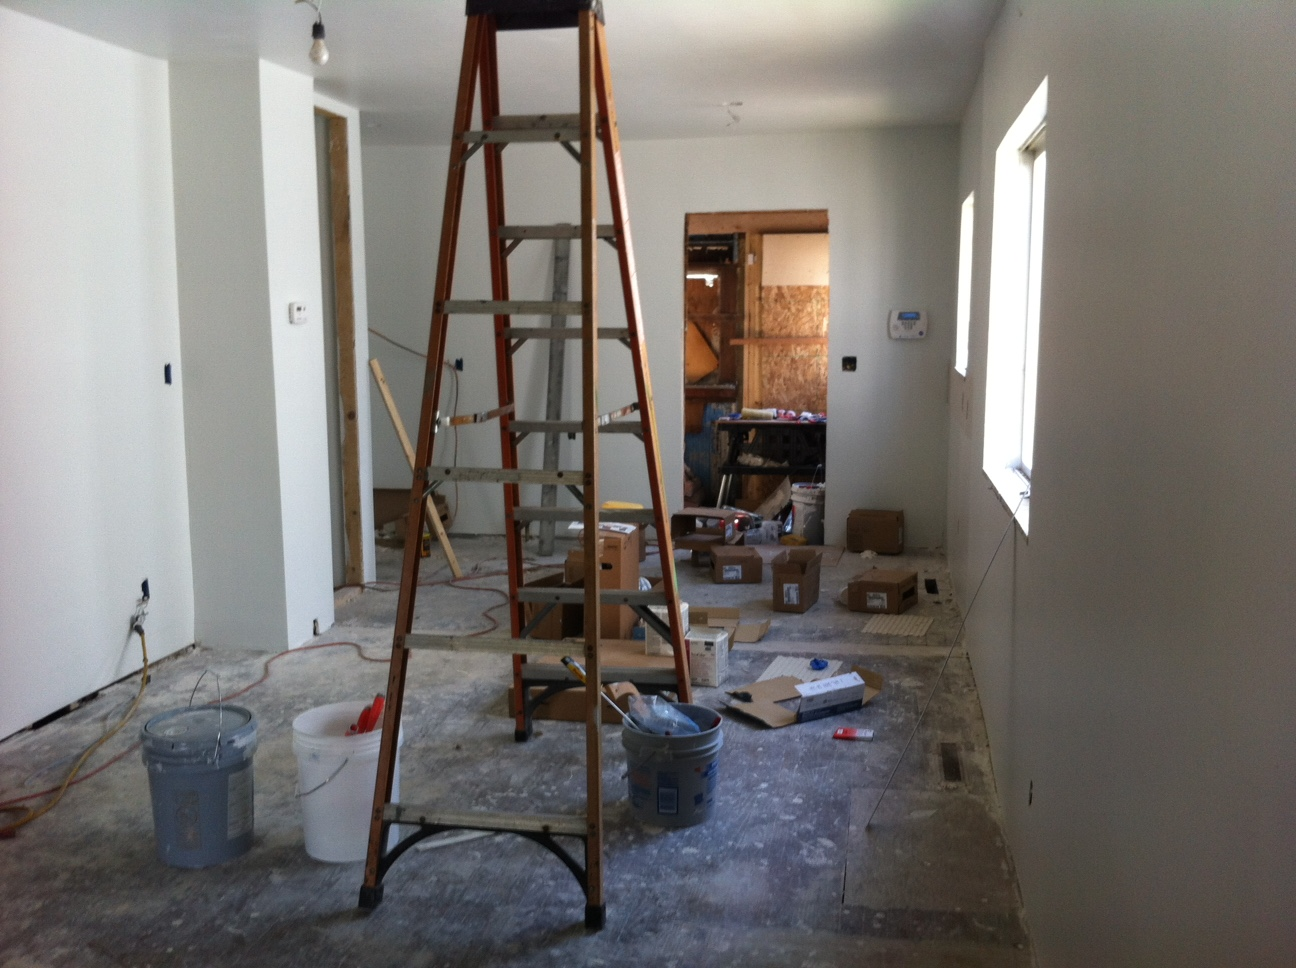 this is what my house looked like the first time I was inside it.